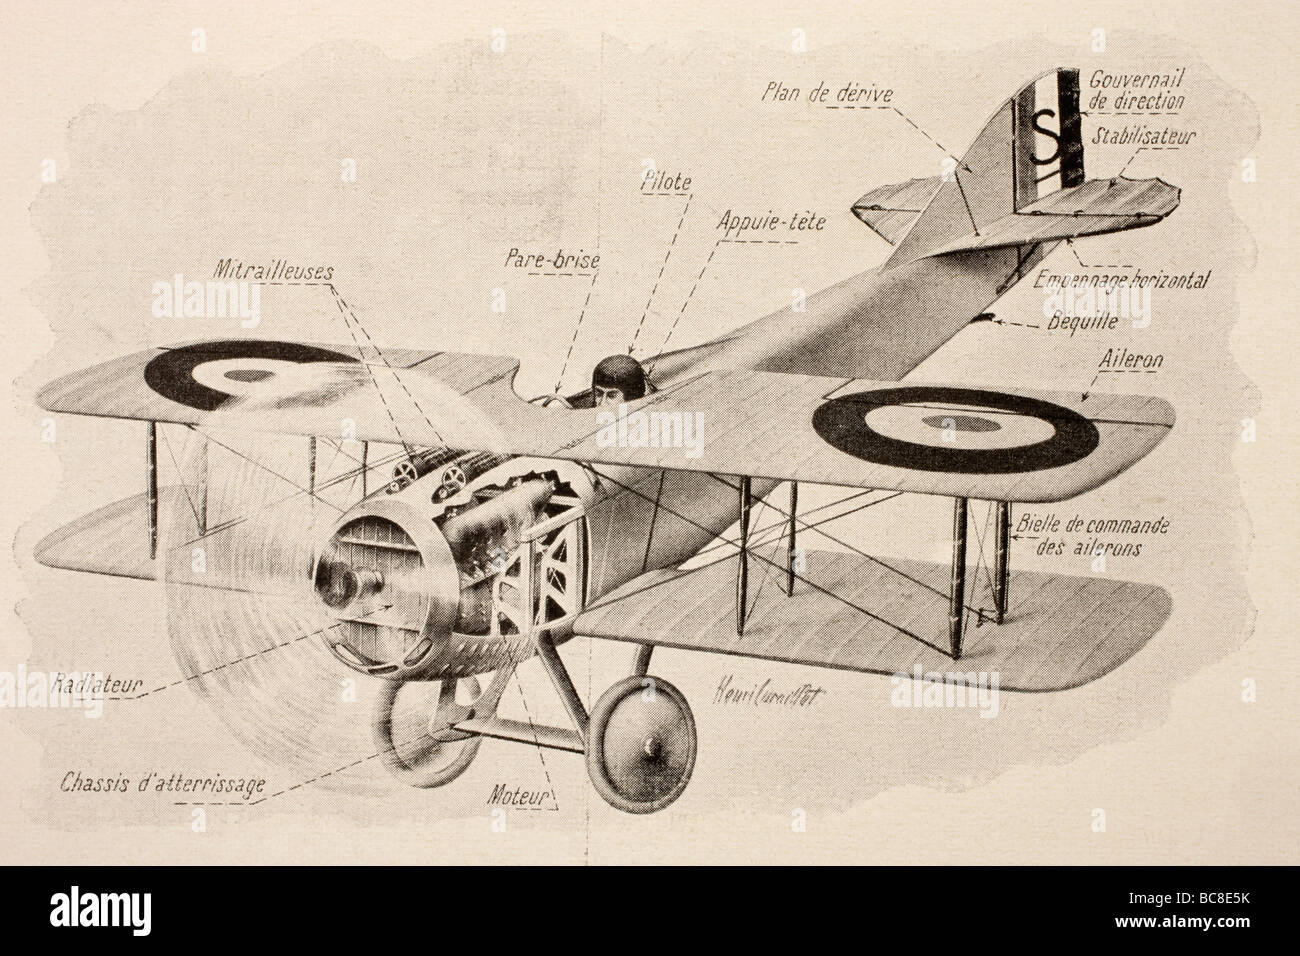 SPAD fighter plane of the French air force with two machine guns - Stock Image